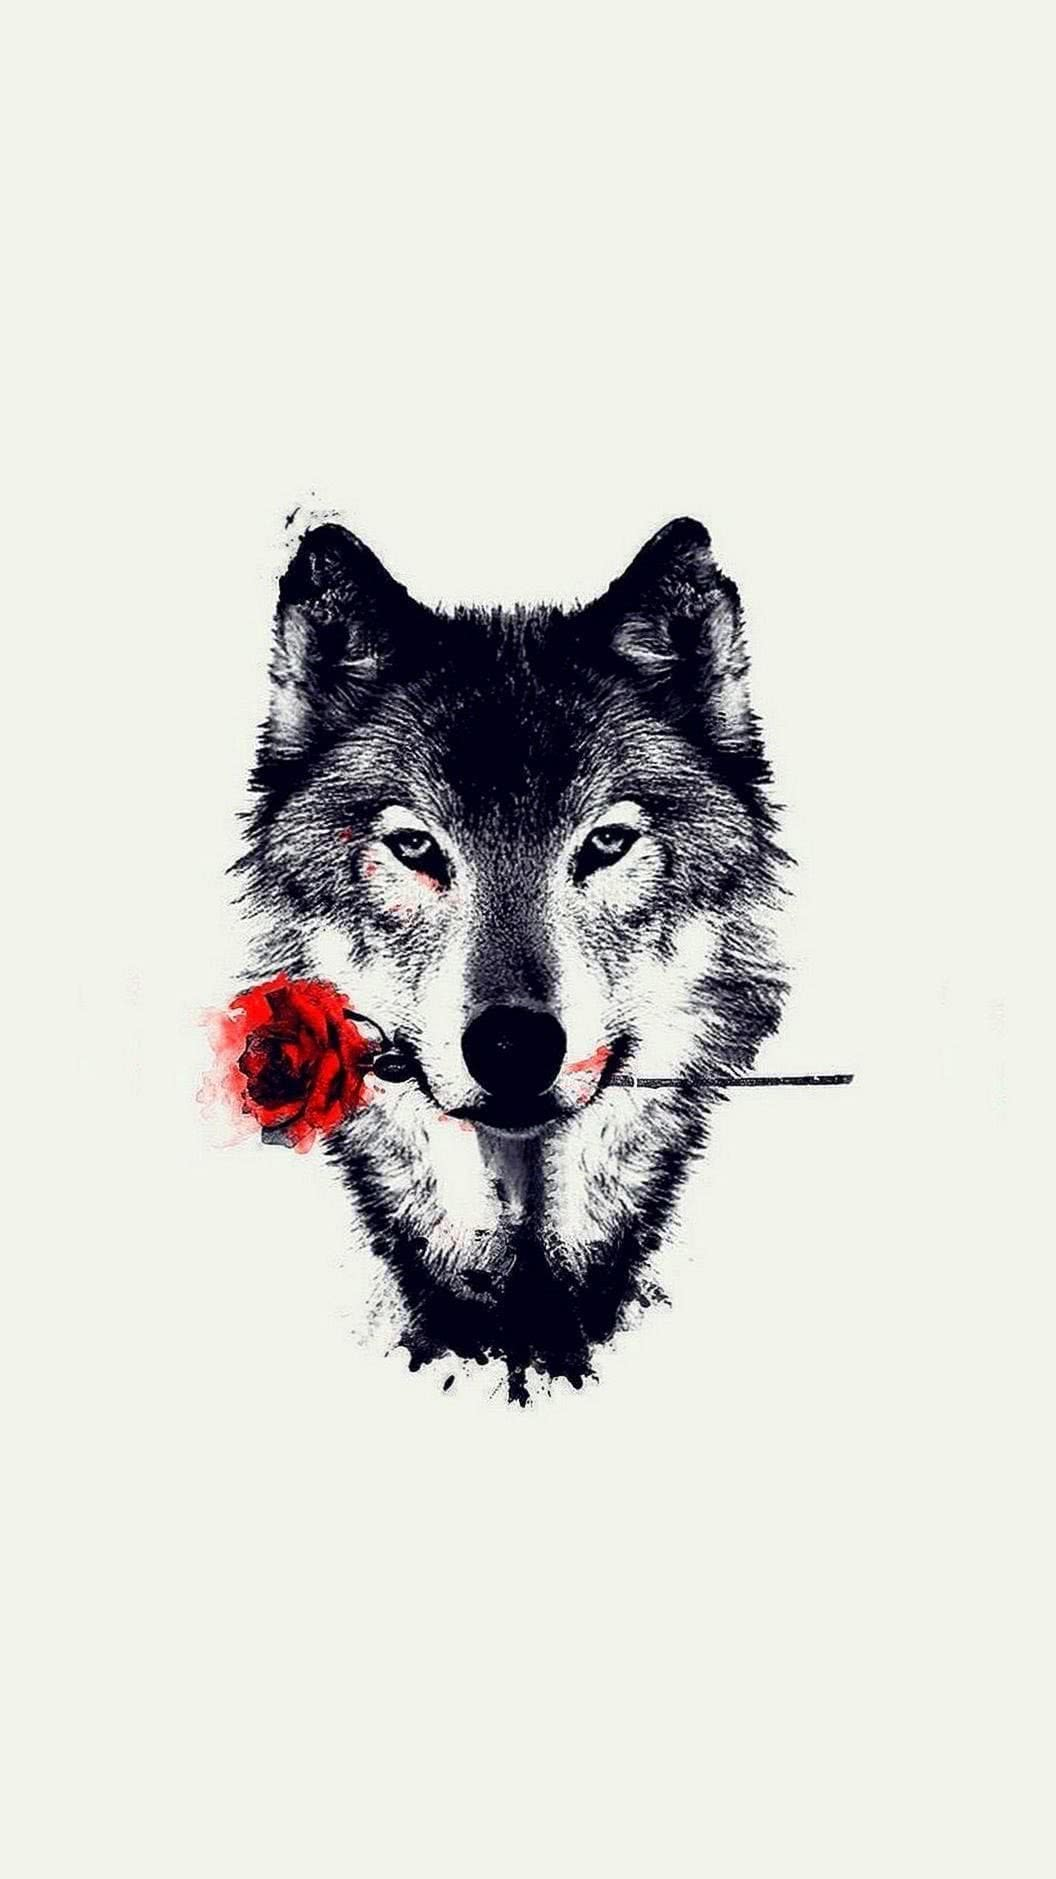 Best Wolf Wallpaper For Mobile Phone